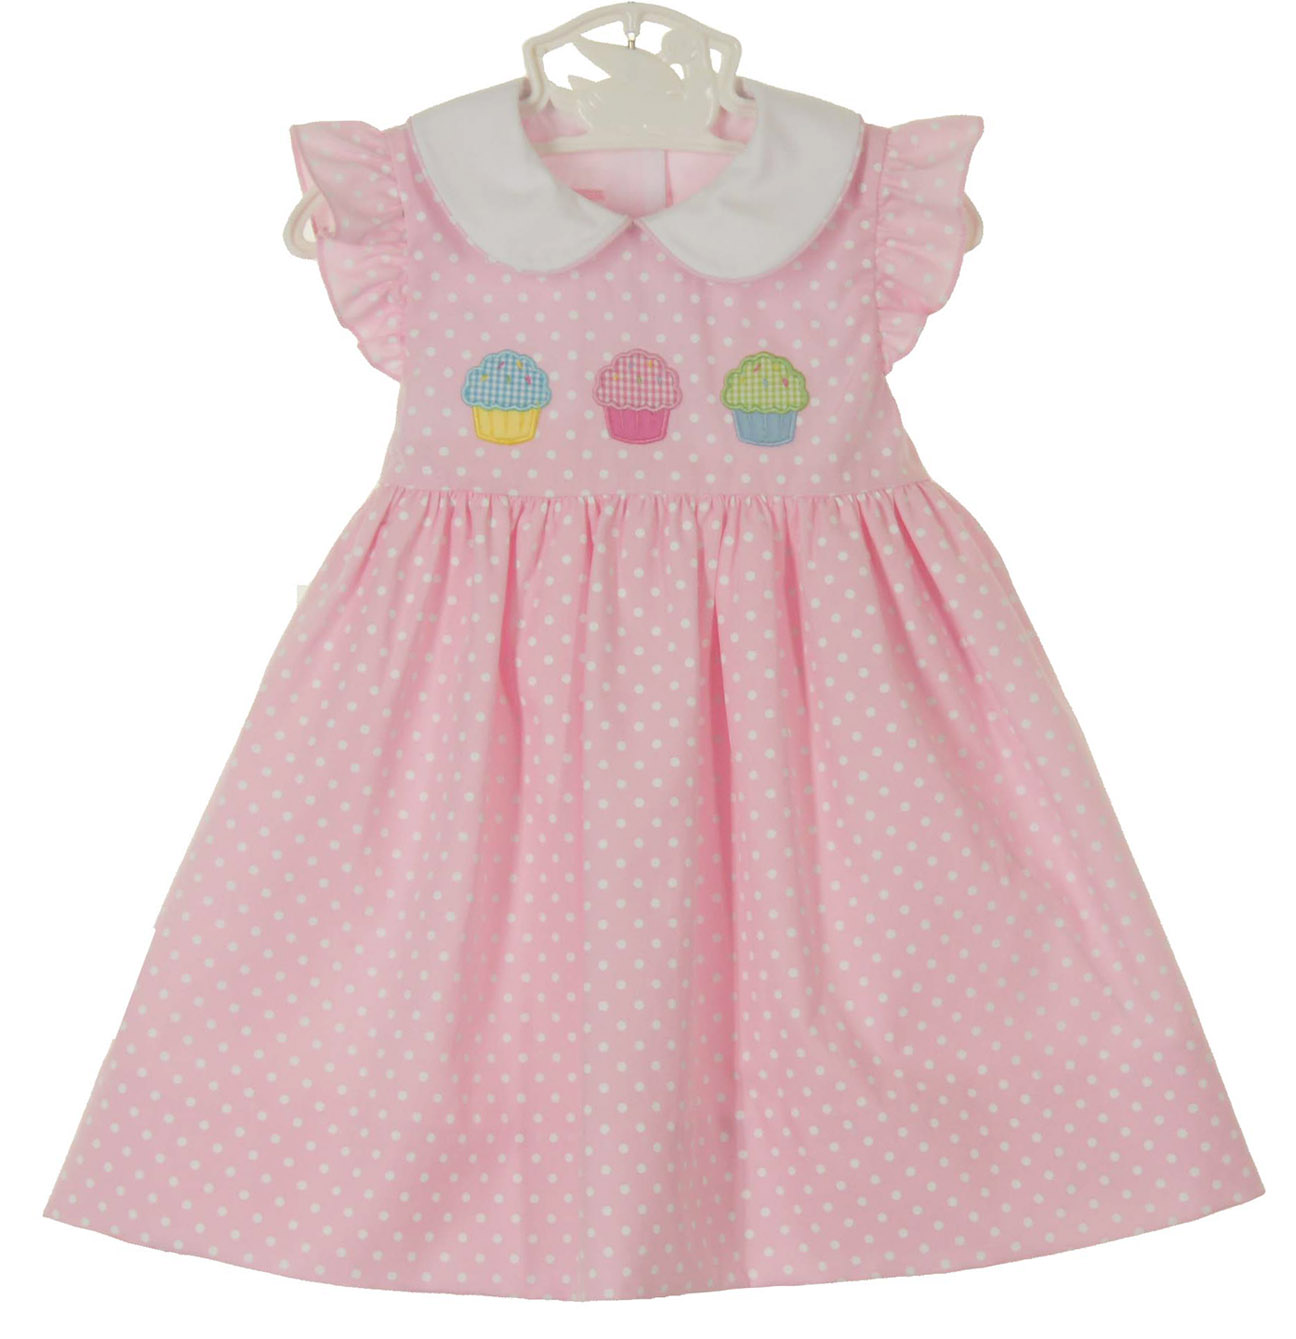 anavini pink dotted dress with angel sleeves and cupcake. Black Bedroom Furniture Sets. Home Design Ideas